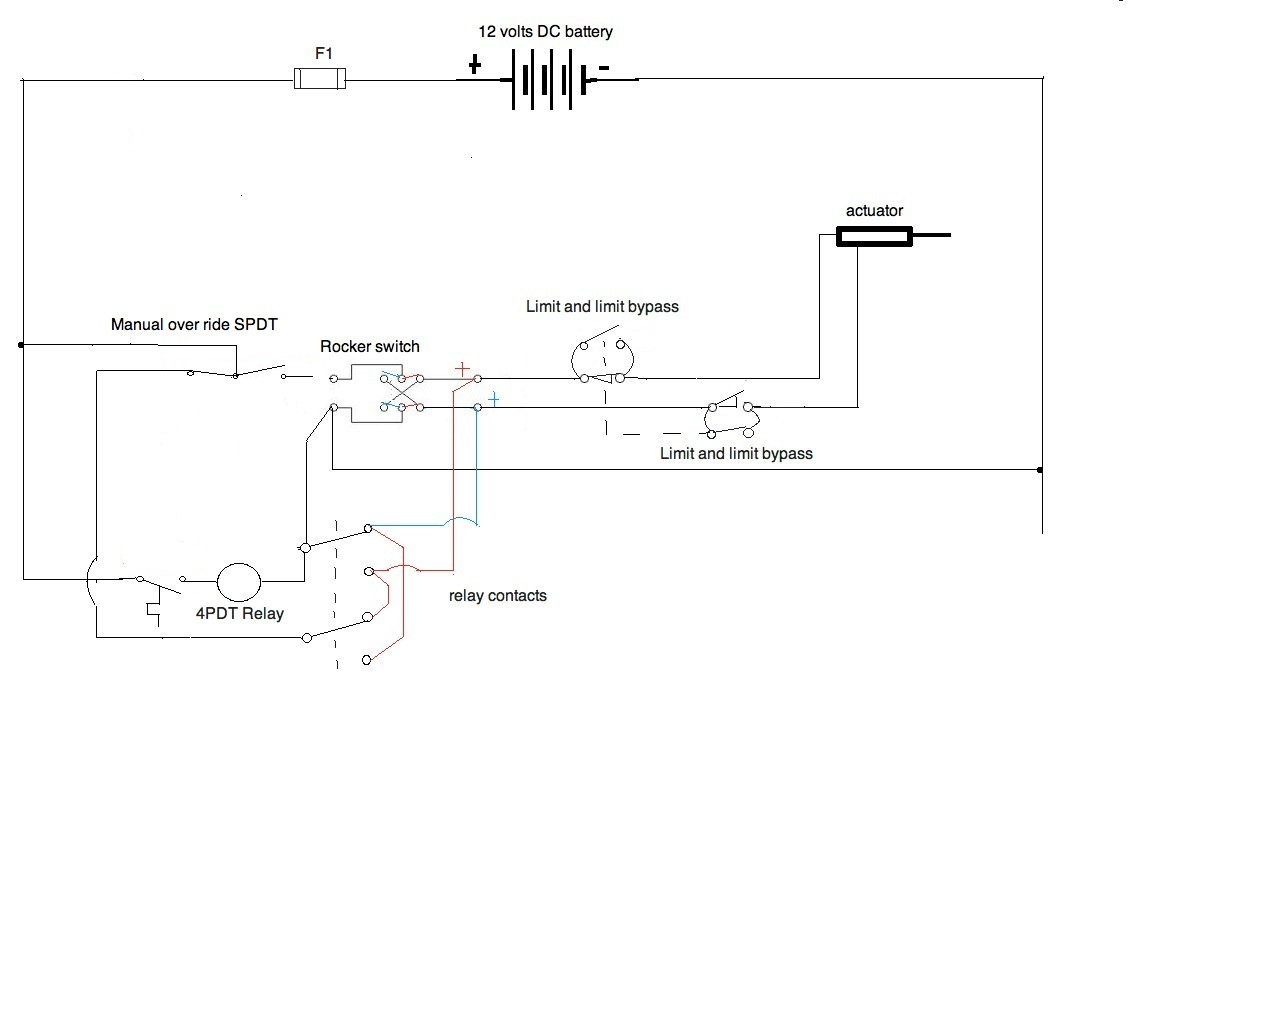 i need a wiring diagram for a 12v application all components here is a final i hope version let me know of any other issues you see i need your input teh spdt over ride will work there nicely